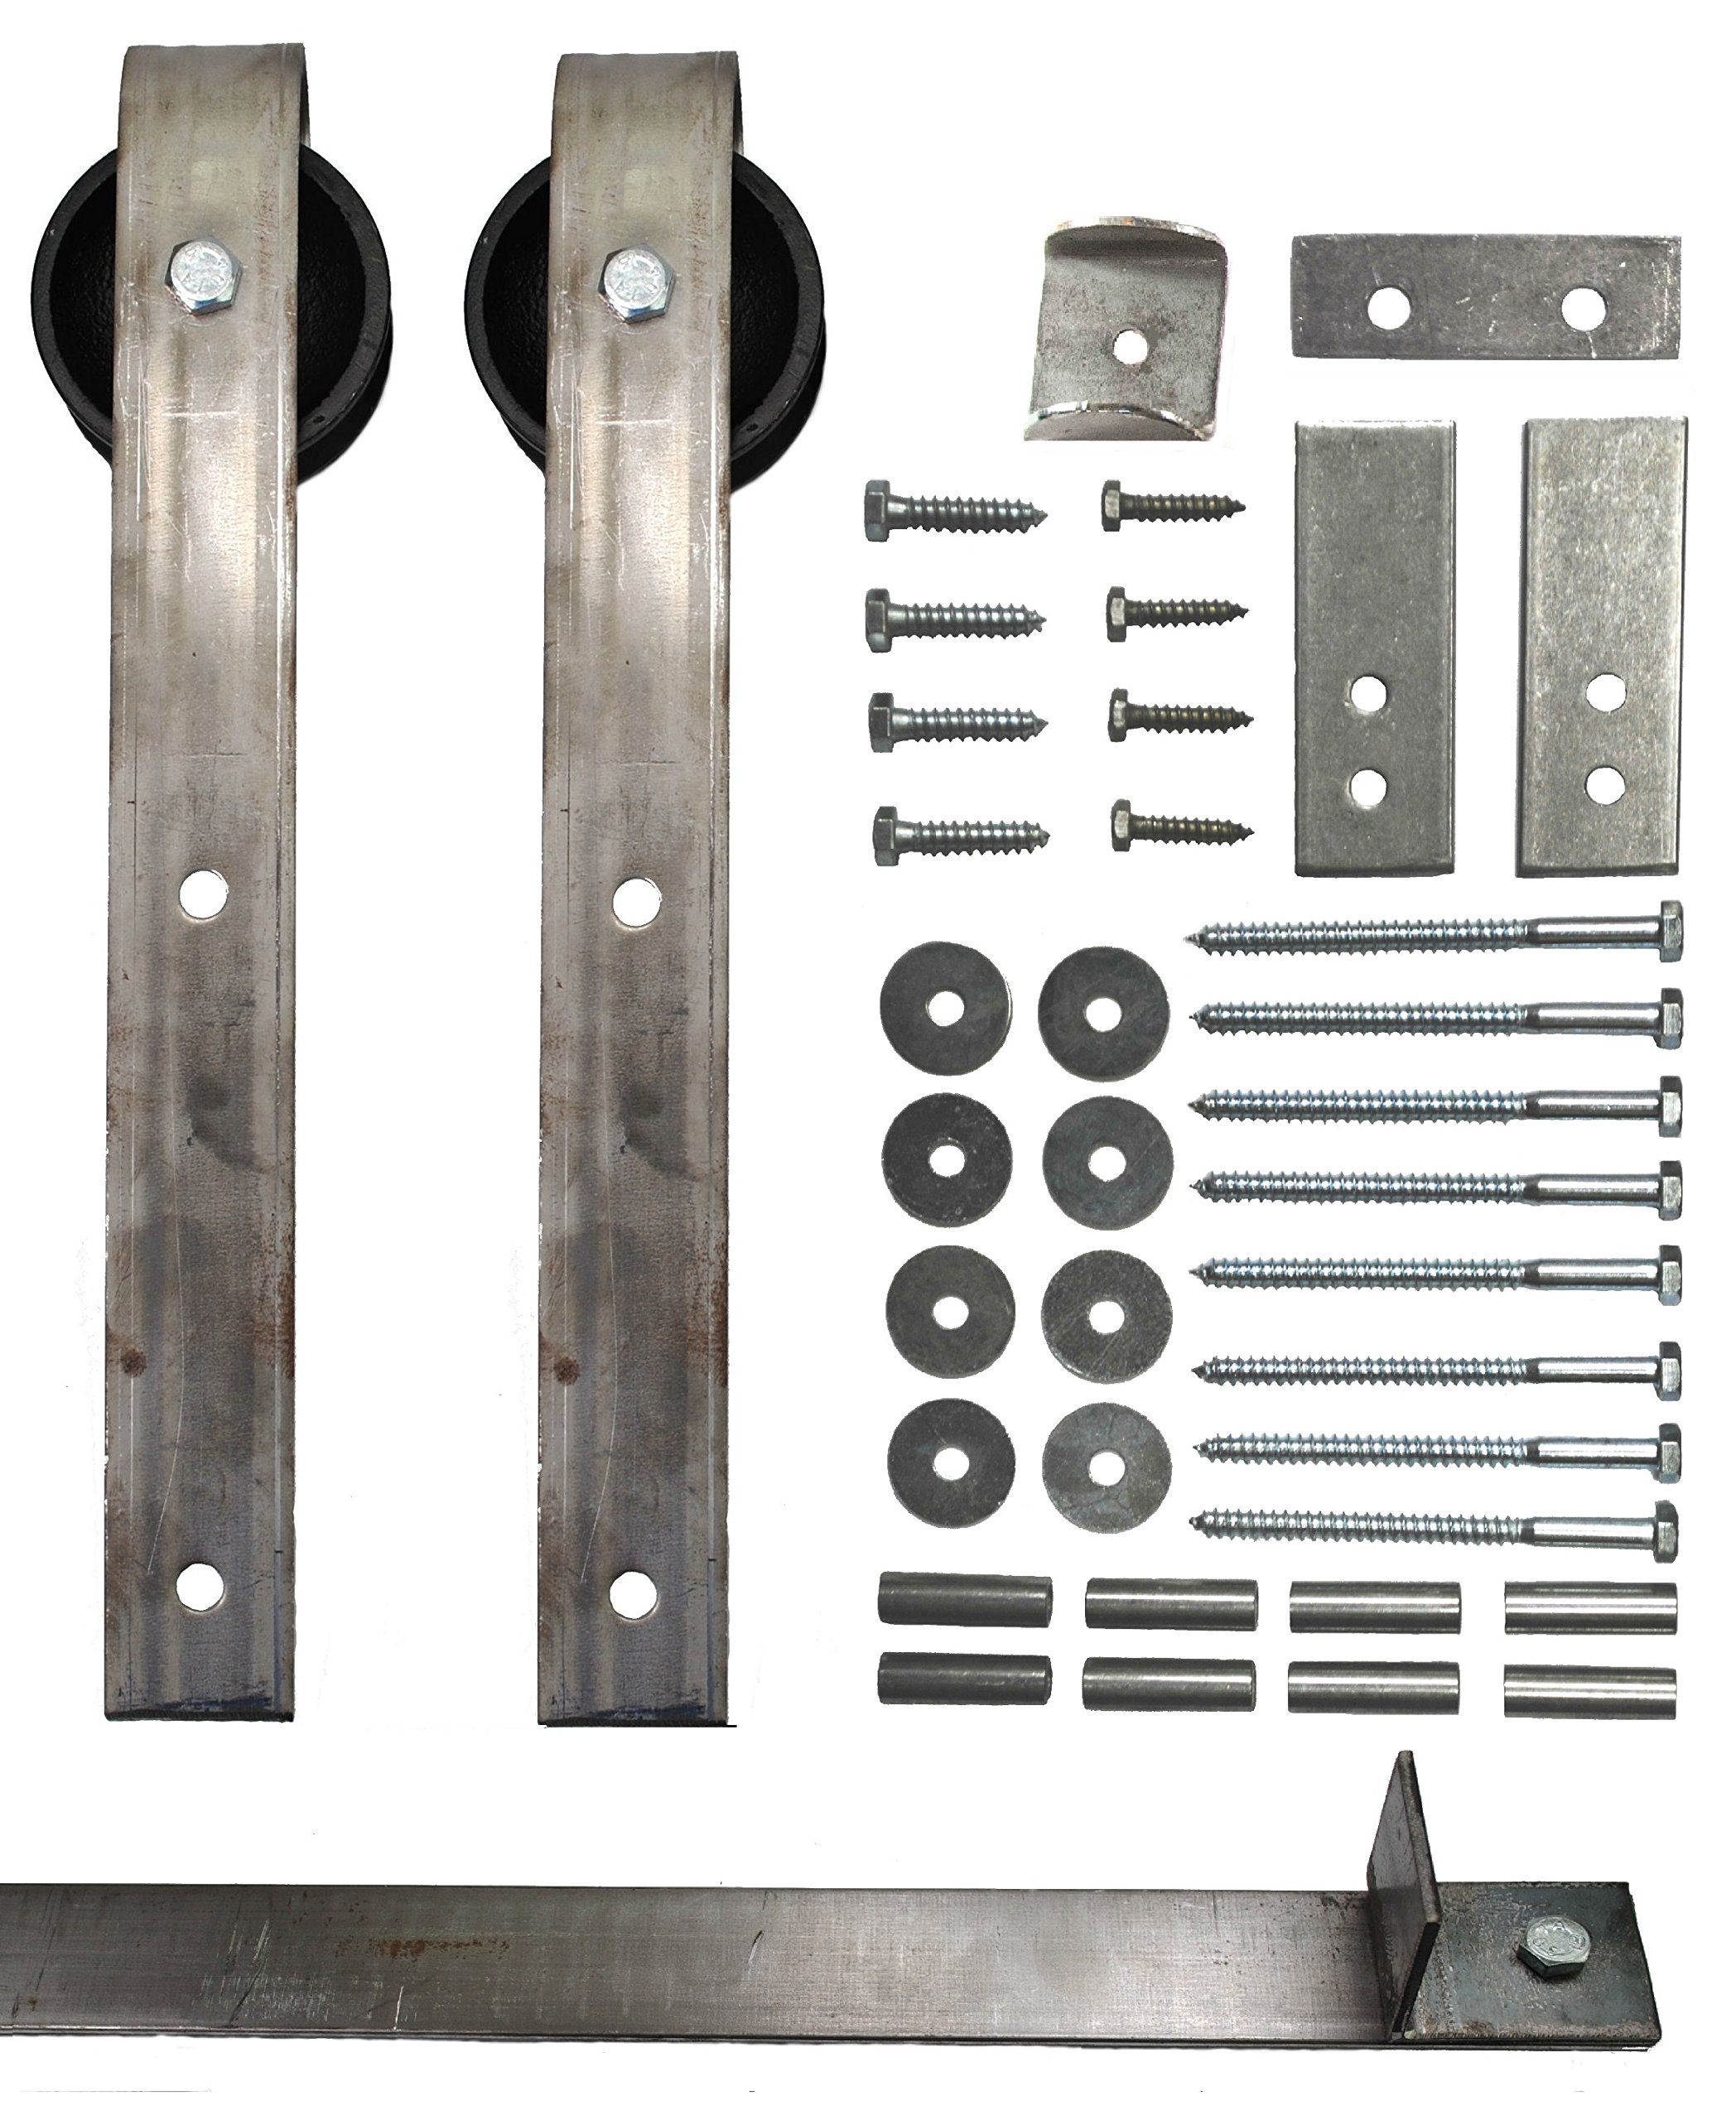 Sliding Barn Door Hardware Kit with 7 Ft. Track Included - Made in USA